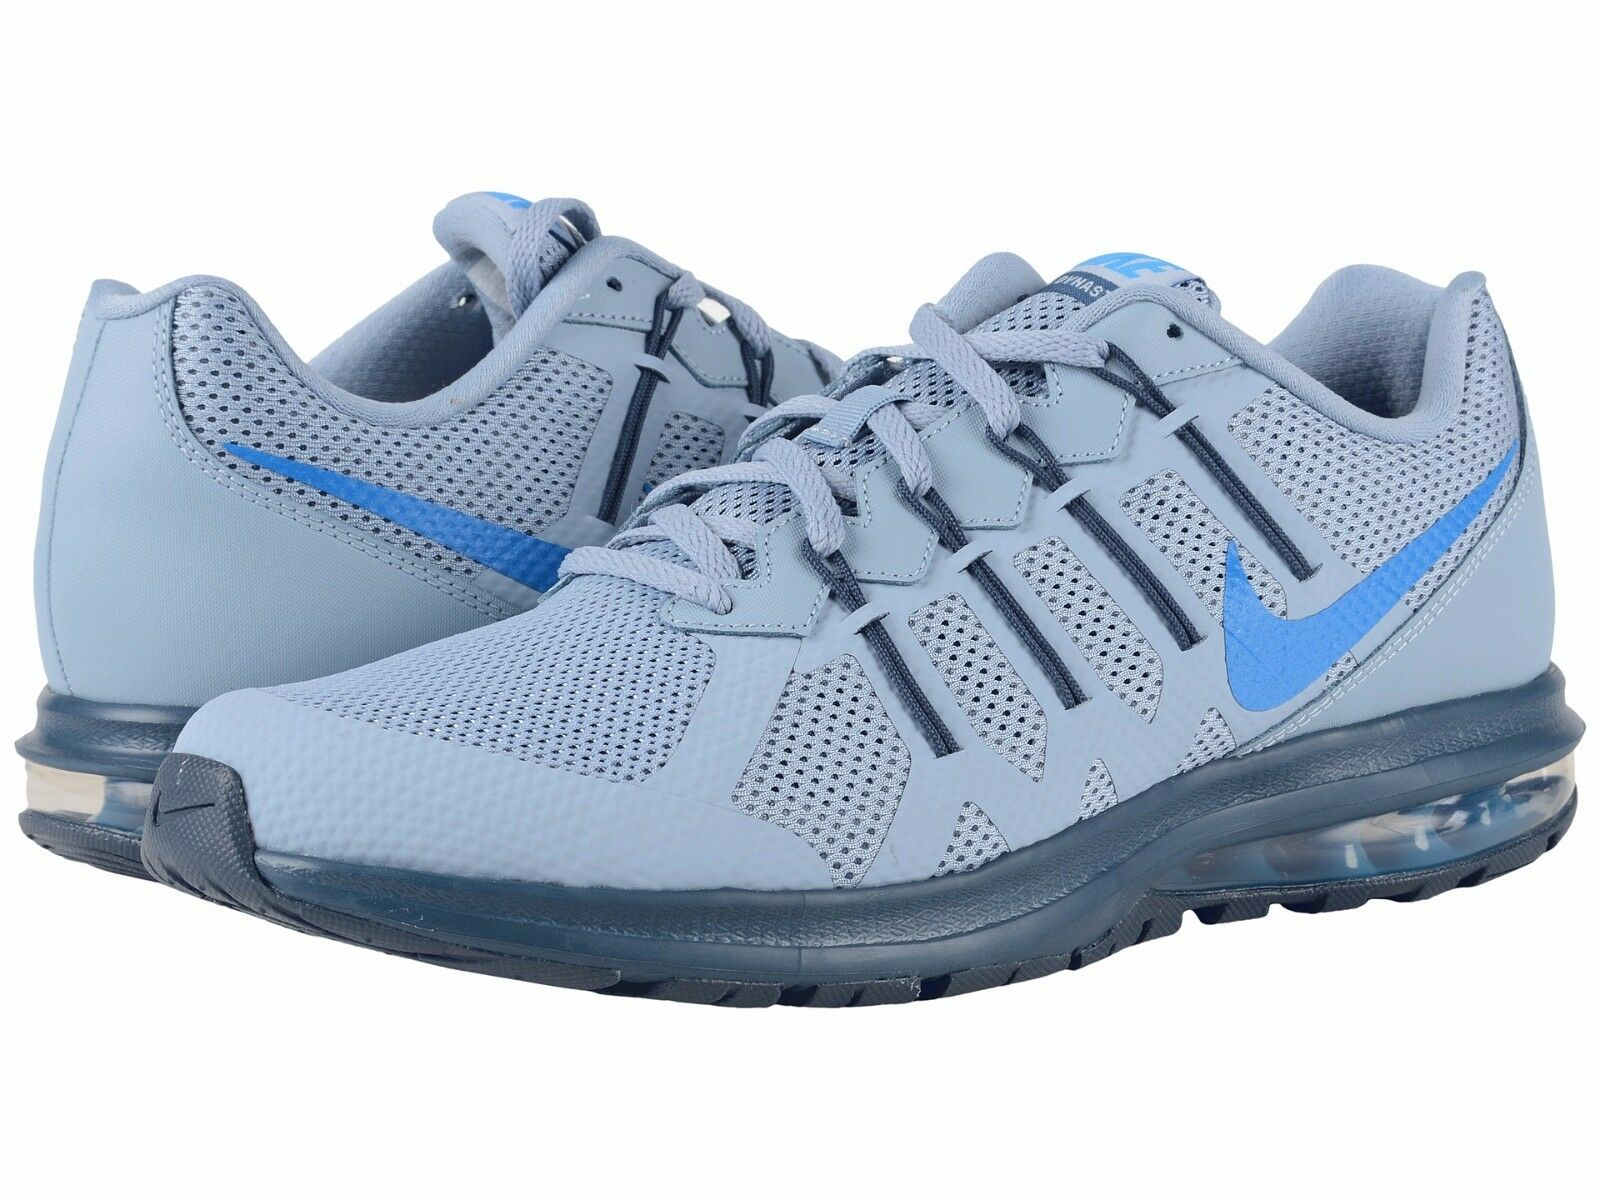 Men's Nike  Sneakers  Grey/Photo Blue  Air Dynasty US Men's Size 10